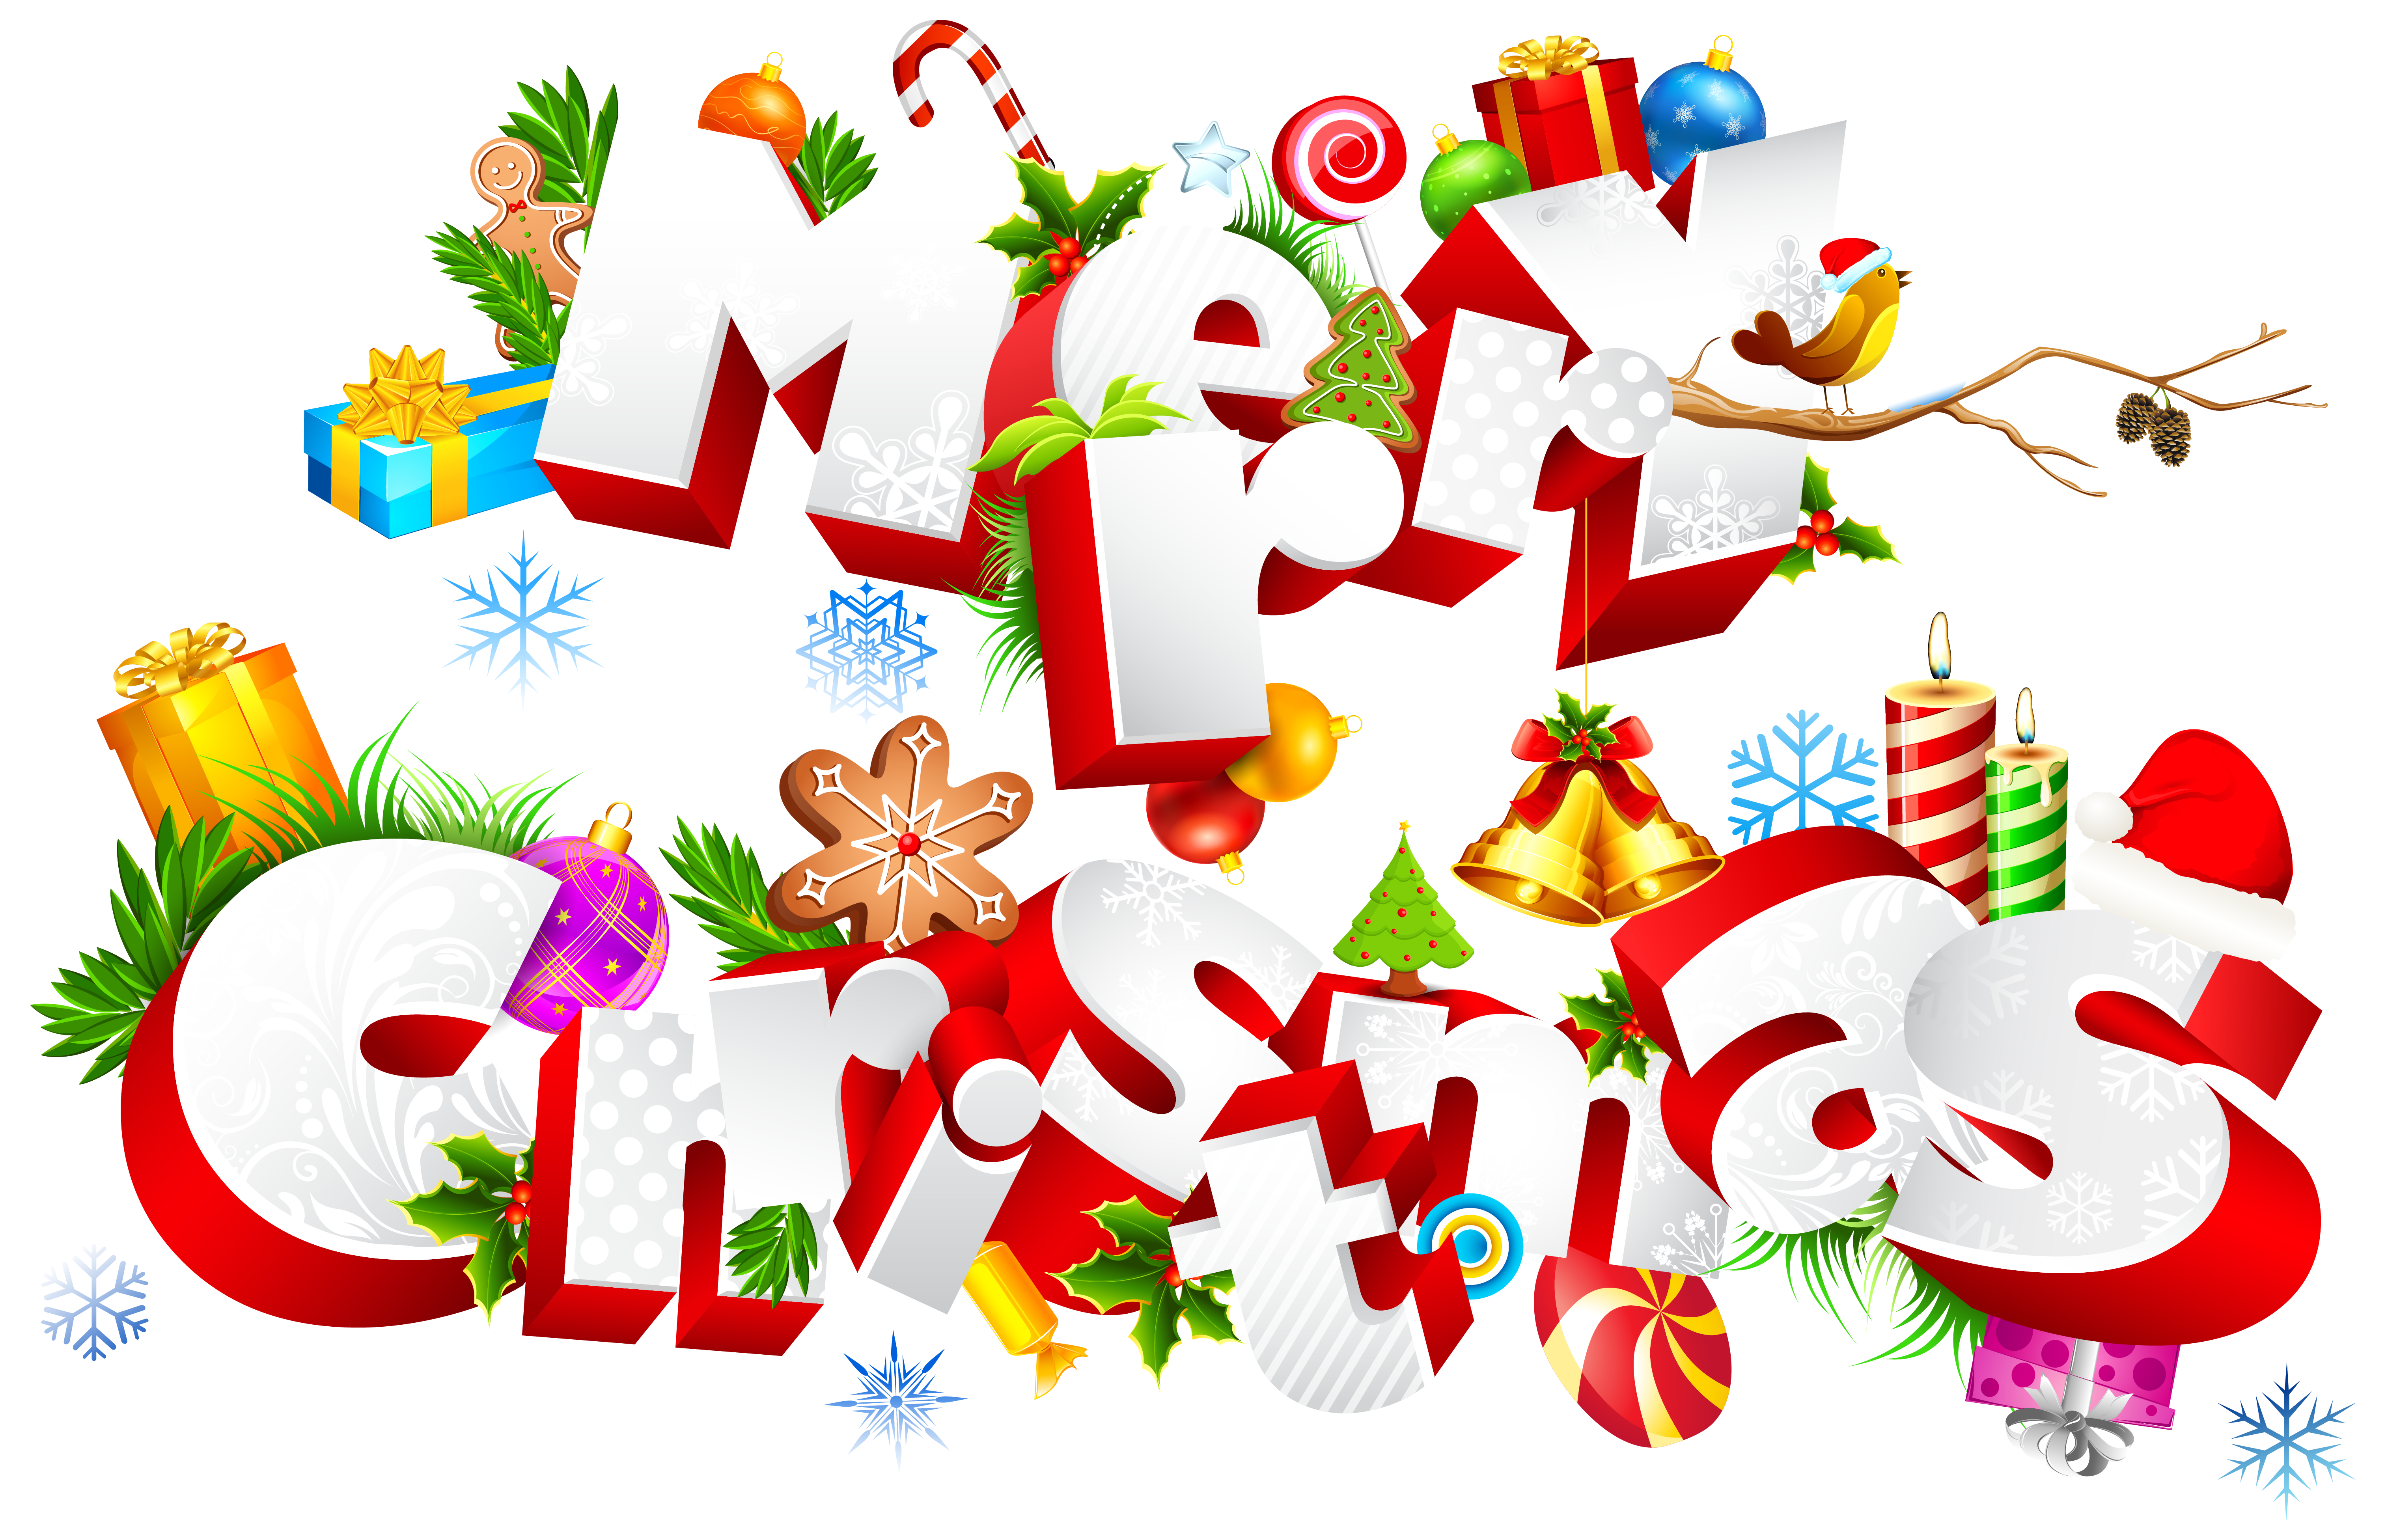 Christmas clipart png. Sweet merry image gallery